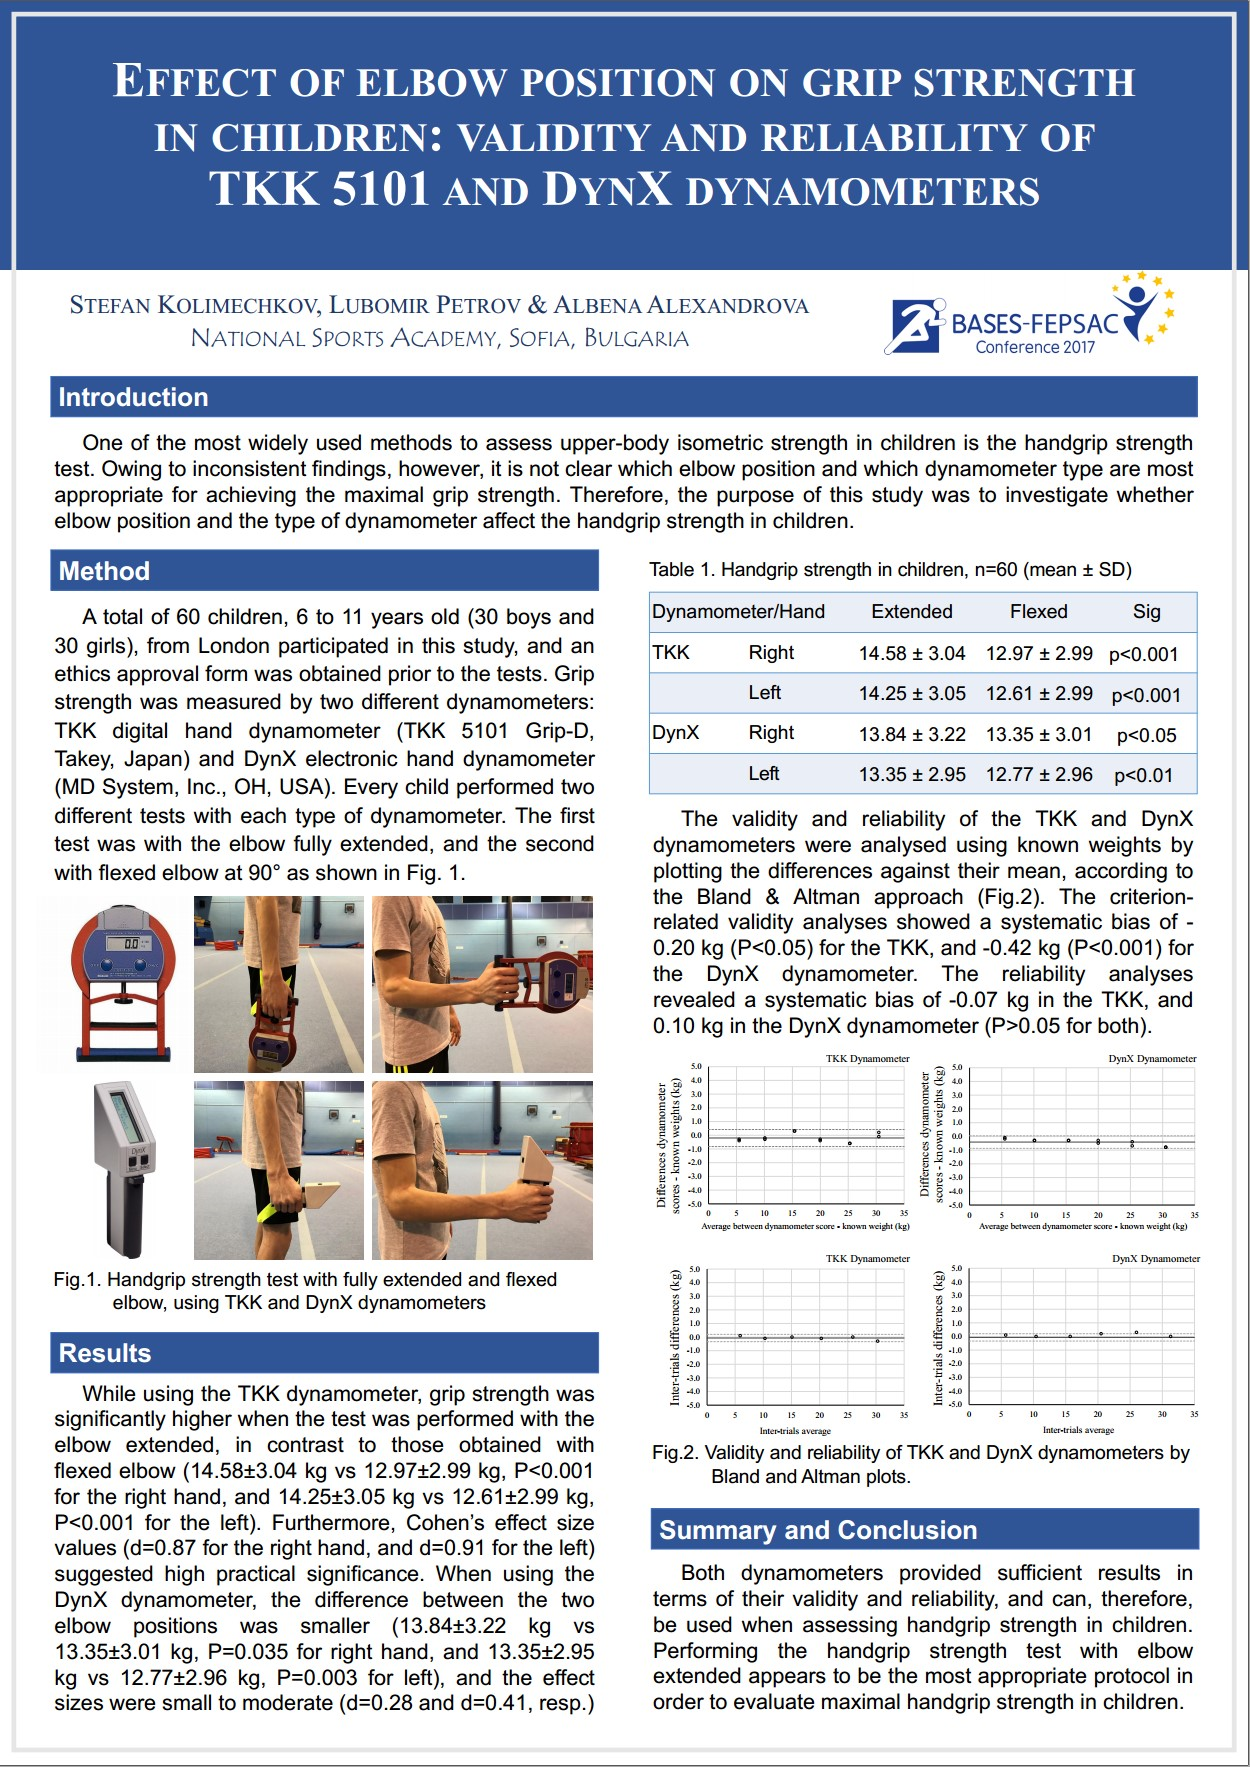 Effect of elbow position on grip strength at the BASES-FEPSAC Conference 2017